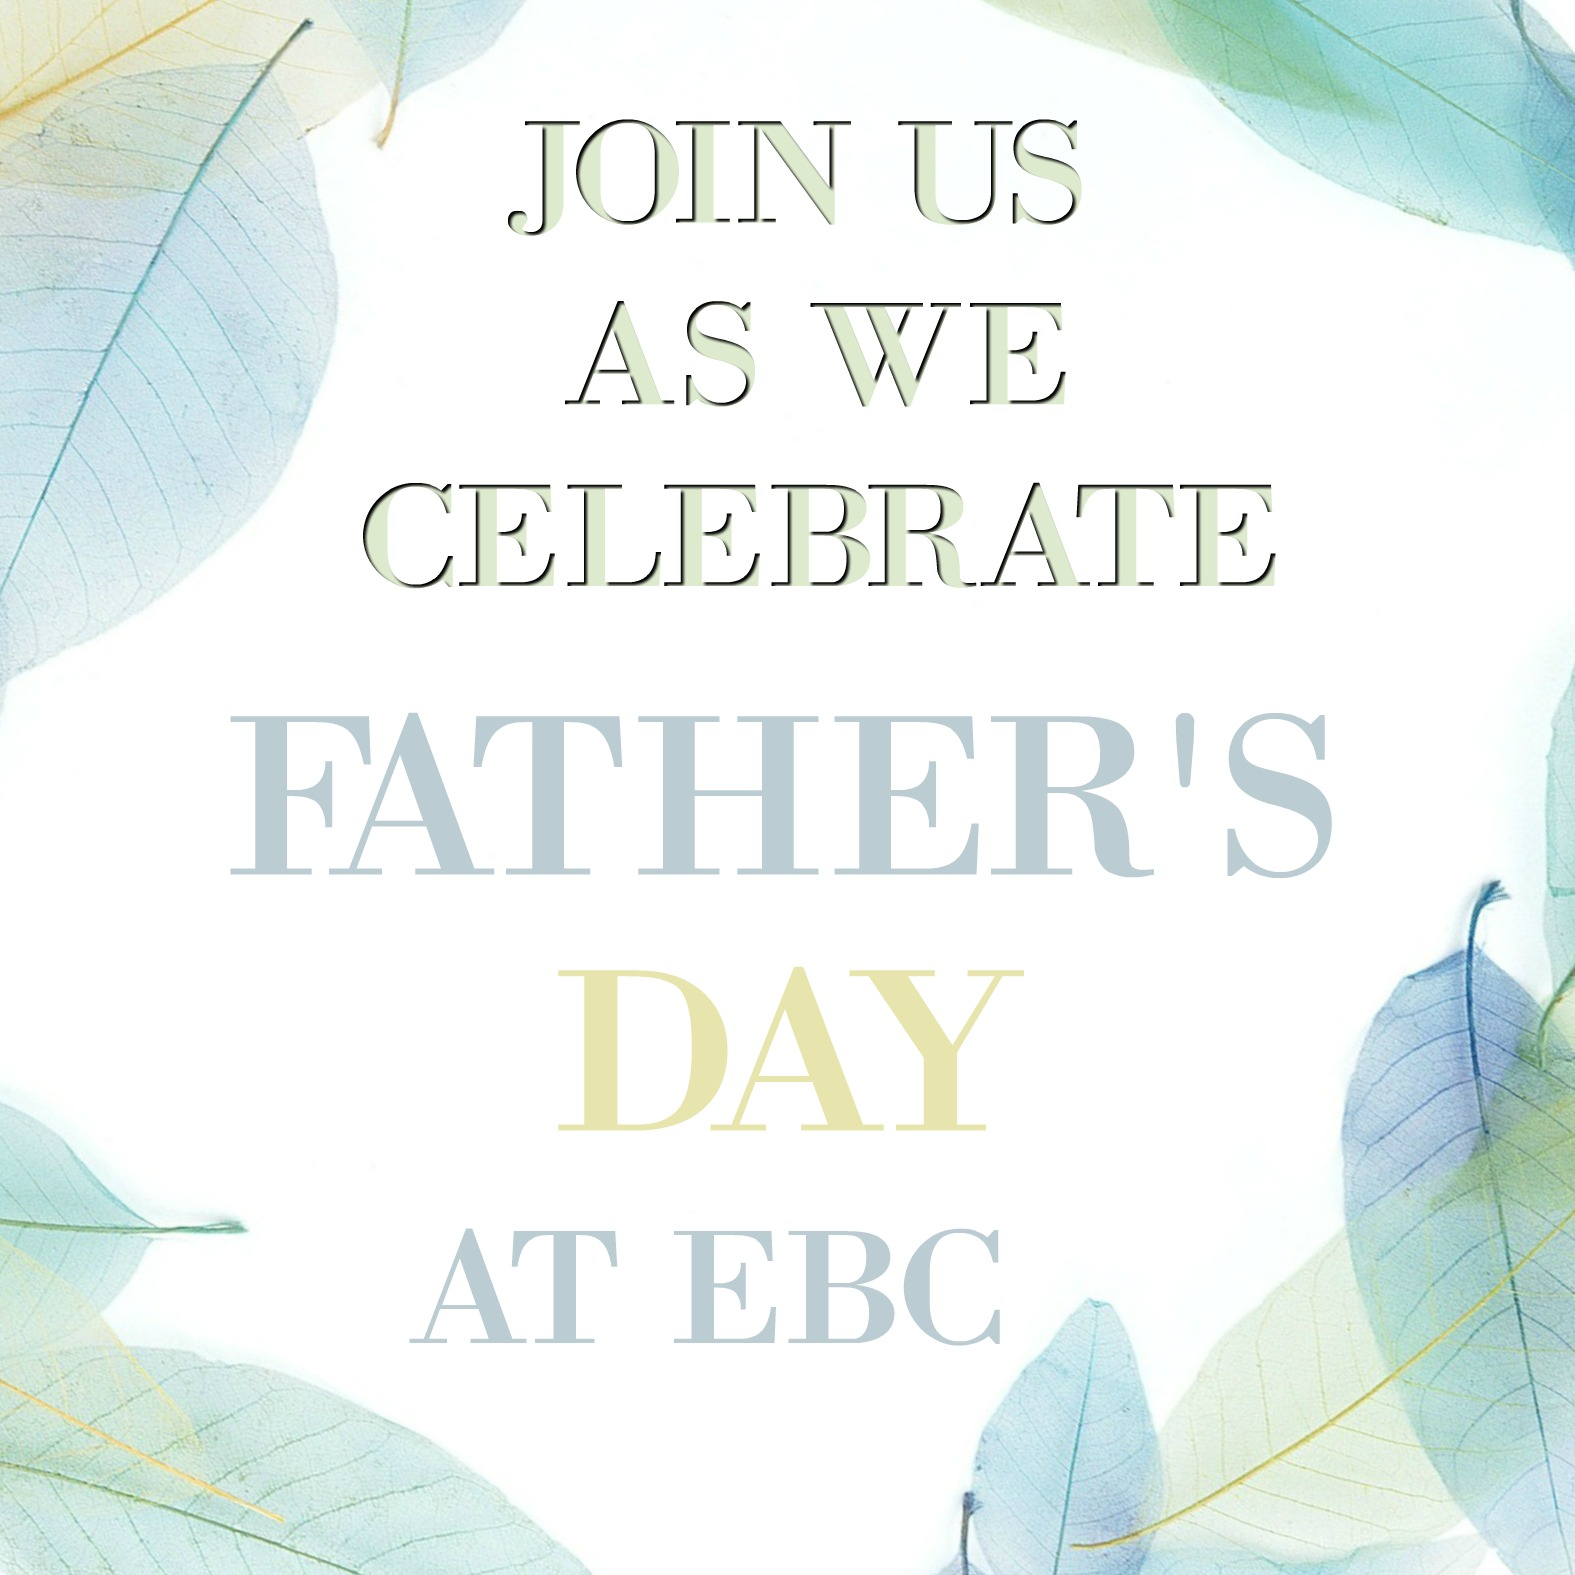 FATHER'S DAY SERVICE — Elmhurst Baptist Church